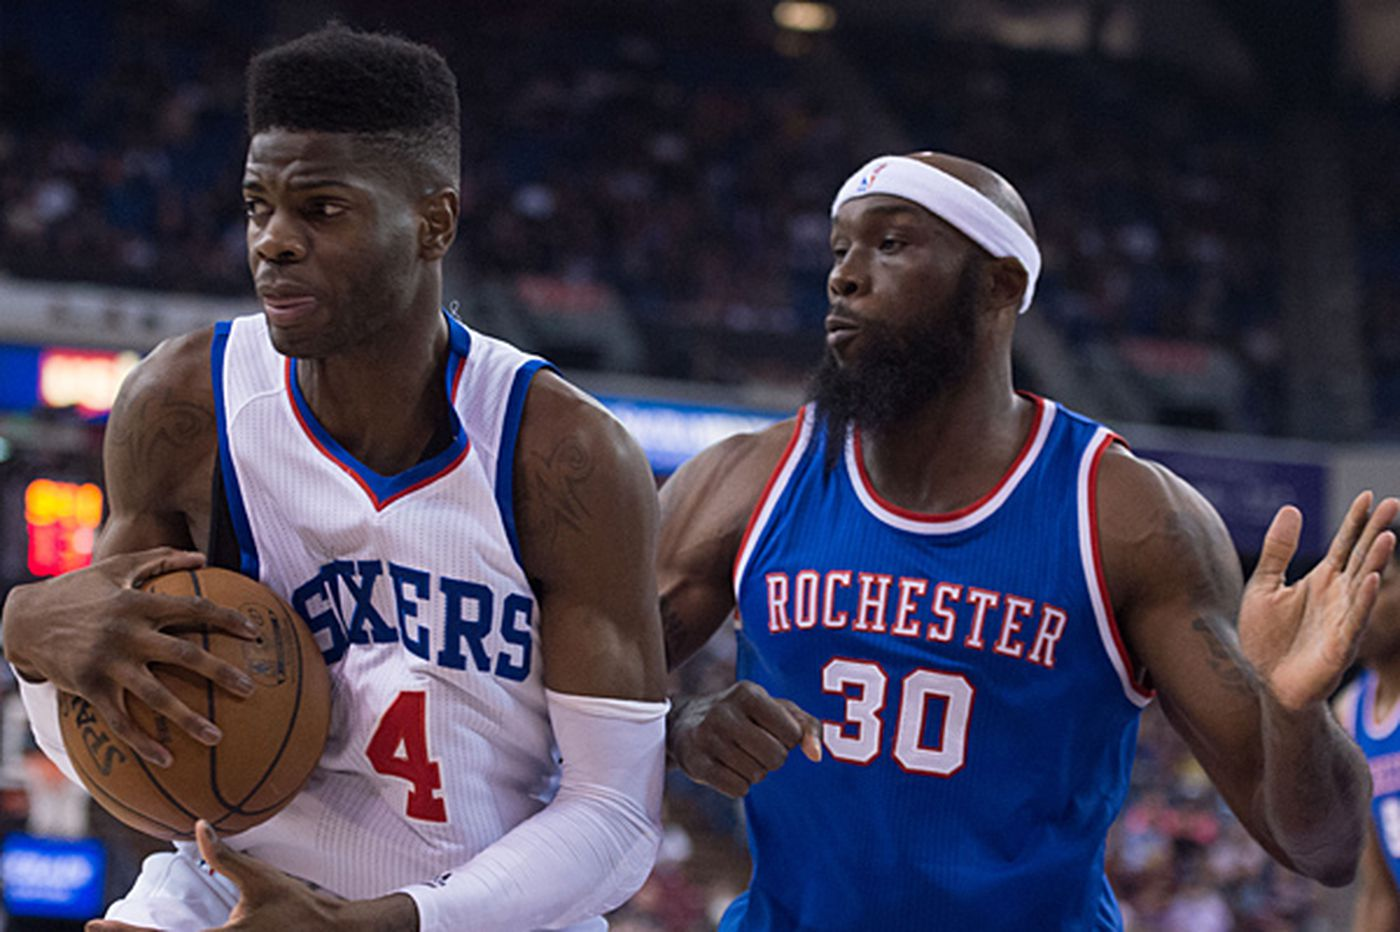 Sixers' Brown says Noel is in mix for rookie of year